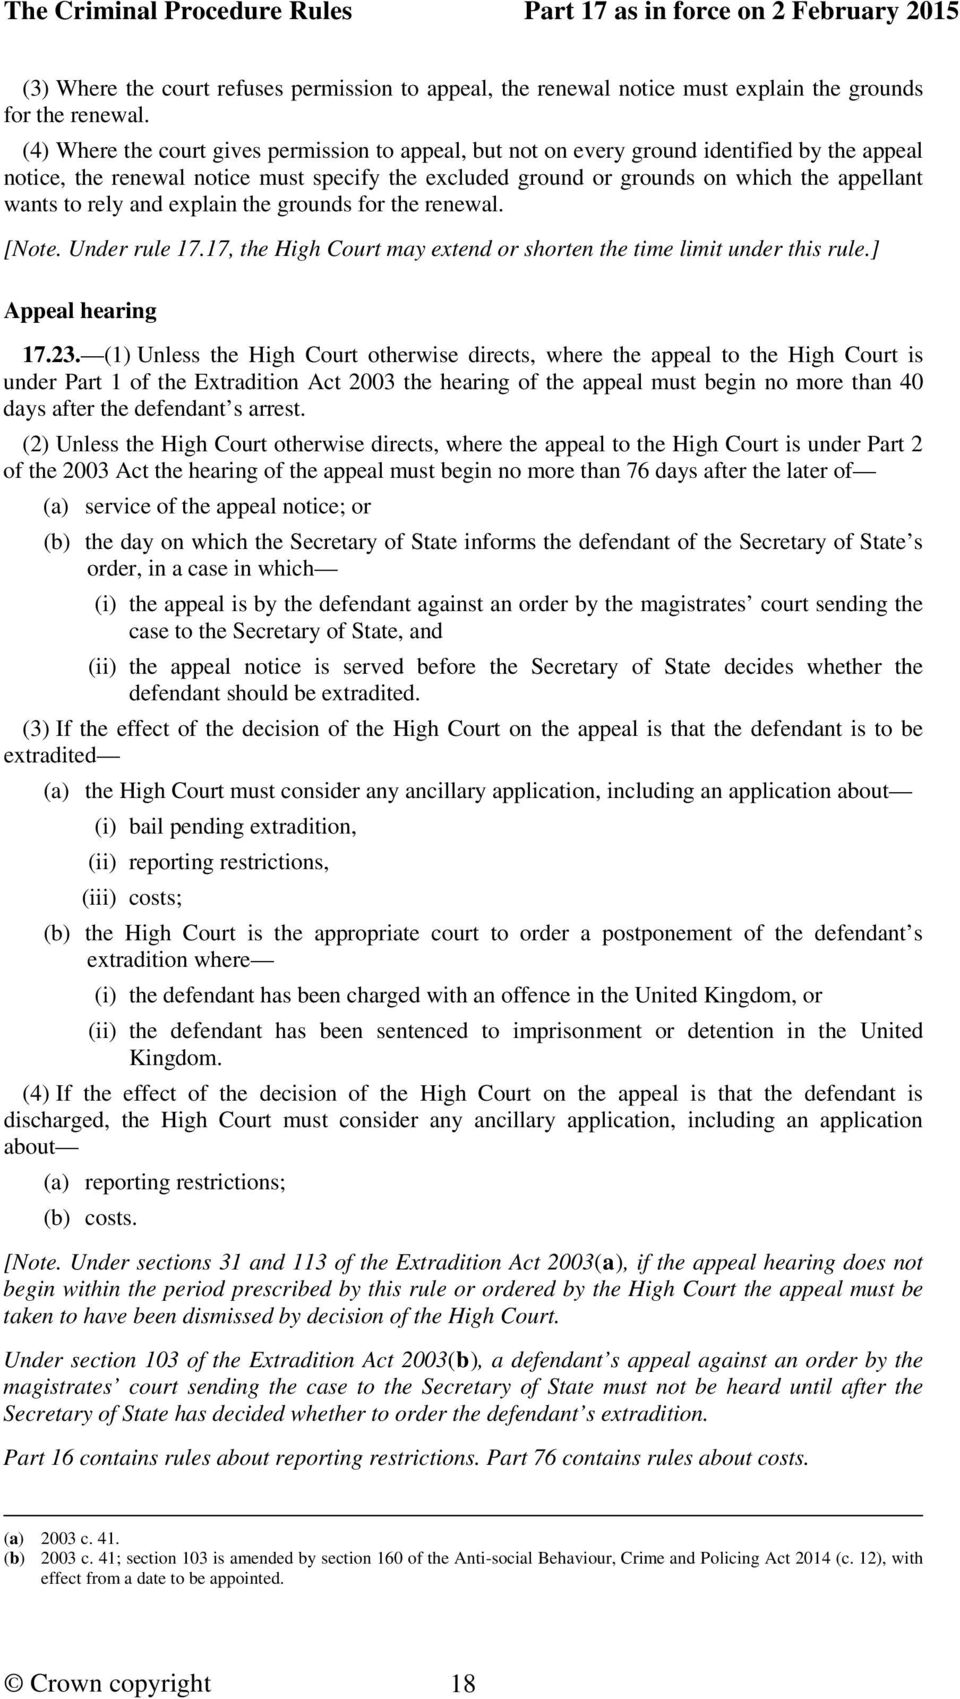 rely and explain the grounds for the renewal. [Note. Under rule 17.17, the High Court may extend or shorten the time limit under this rule.] Appeal hearing 17.23.